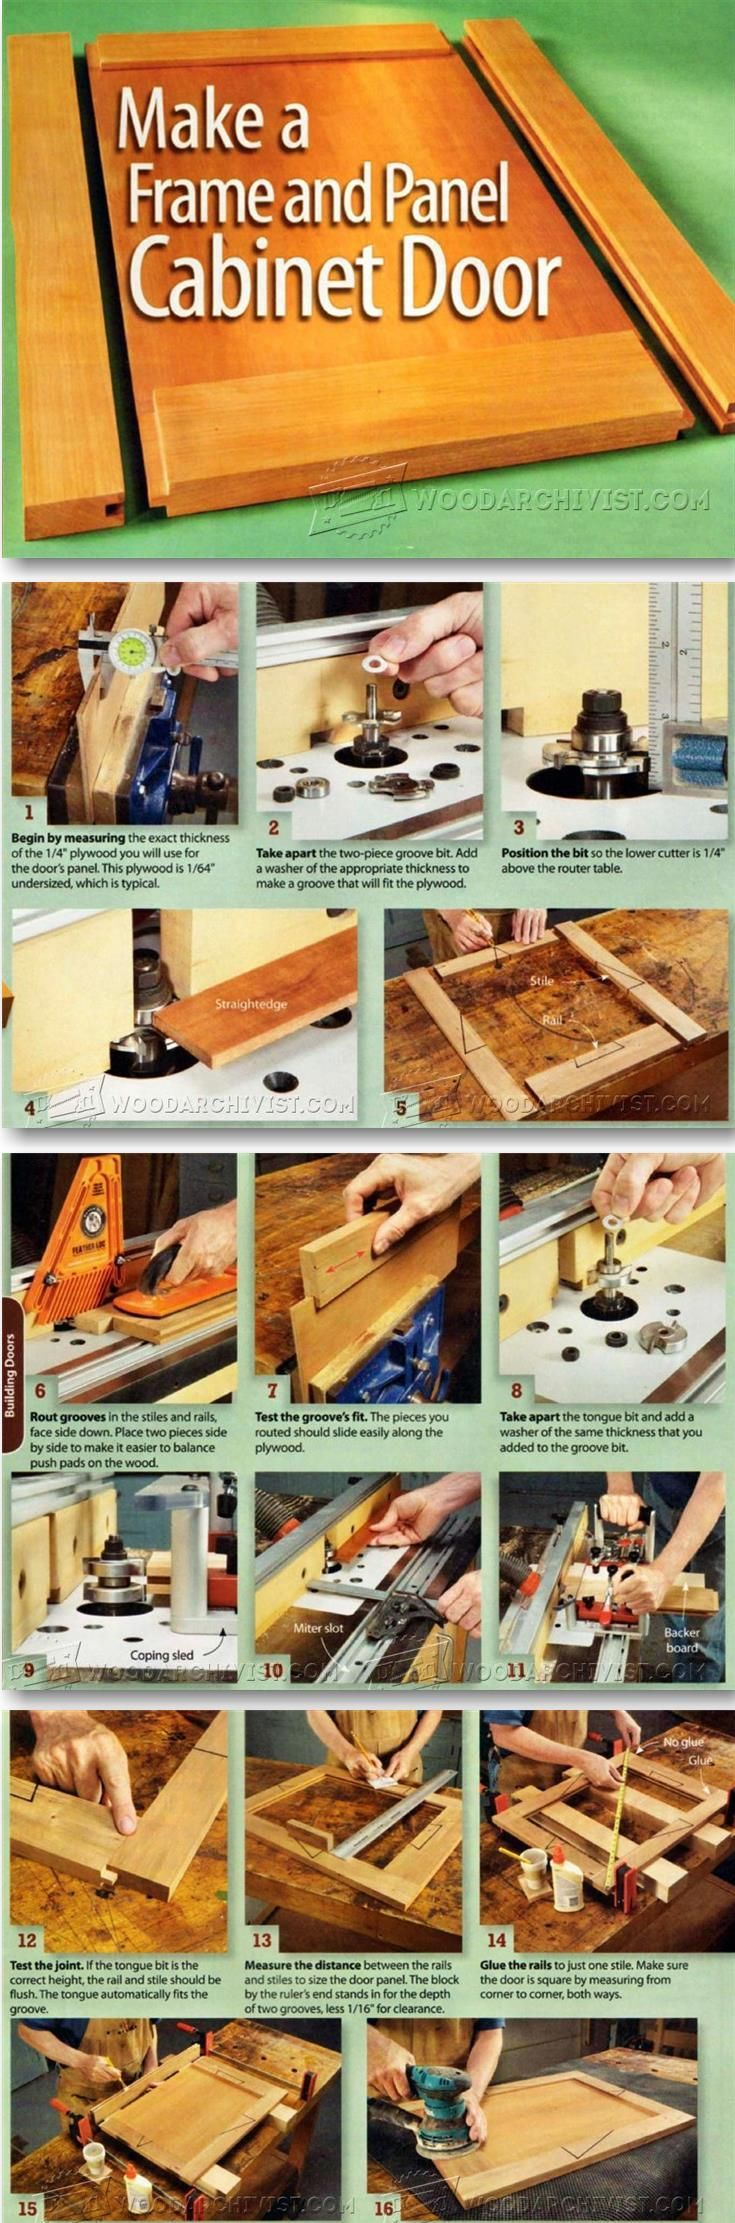 Building Cabinet Doors - Cabinet Door Construction Techniques | WoodArchivist.com